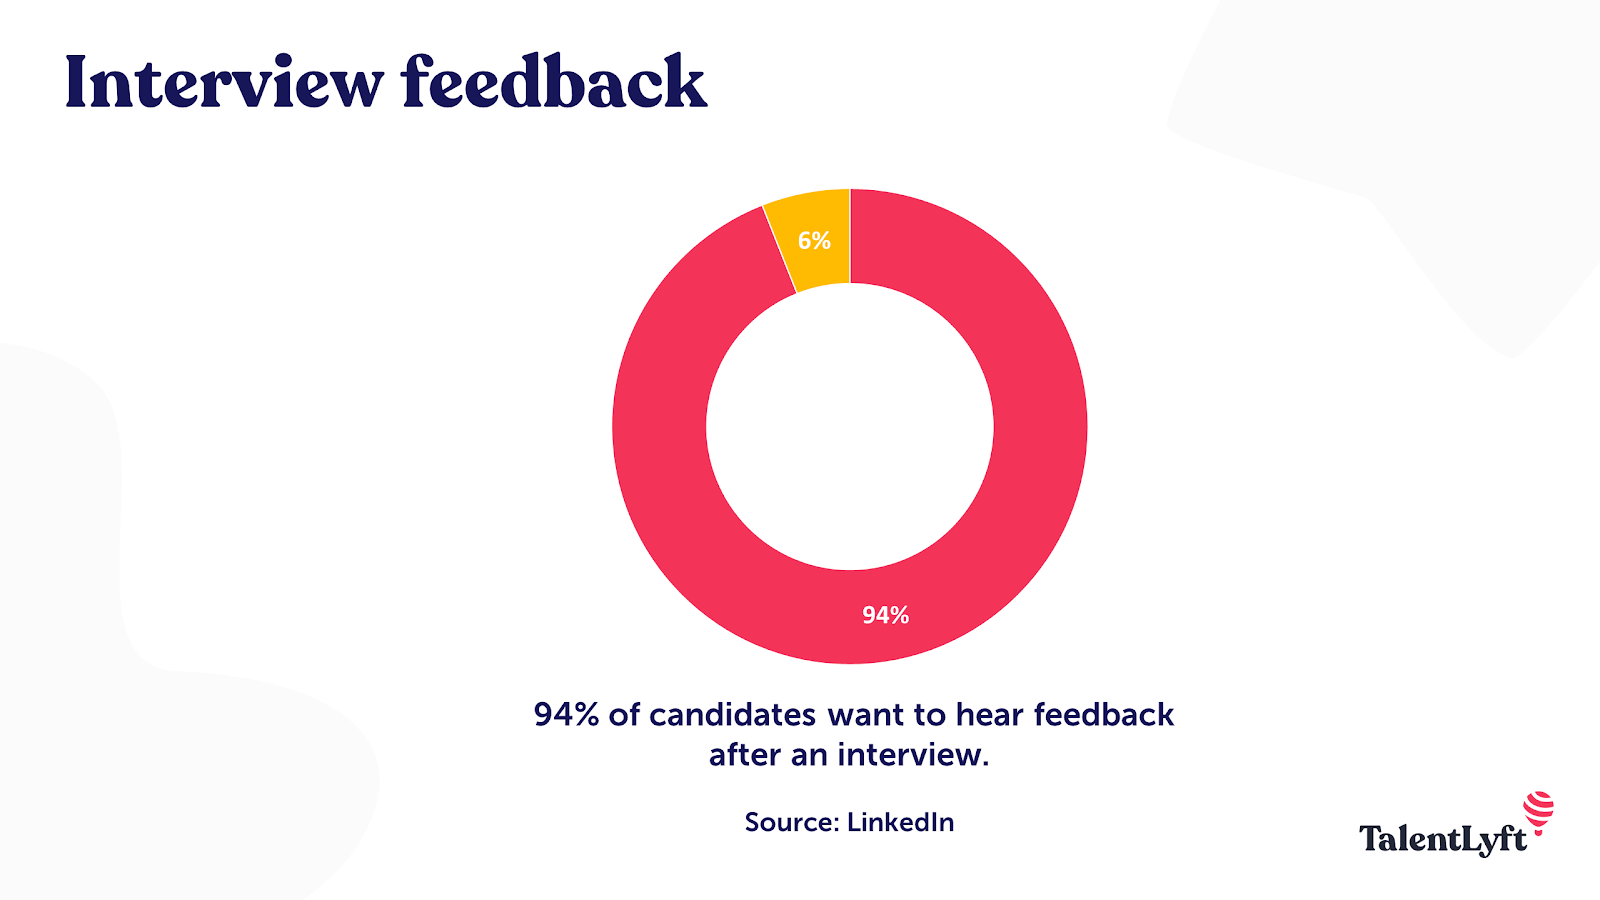 Interview feedback statistic